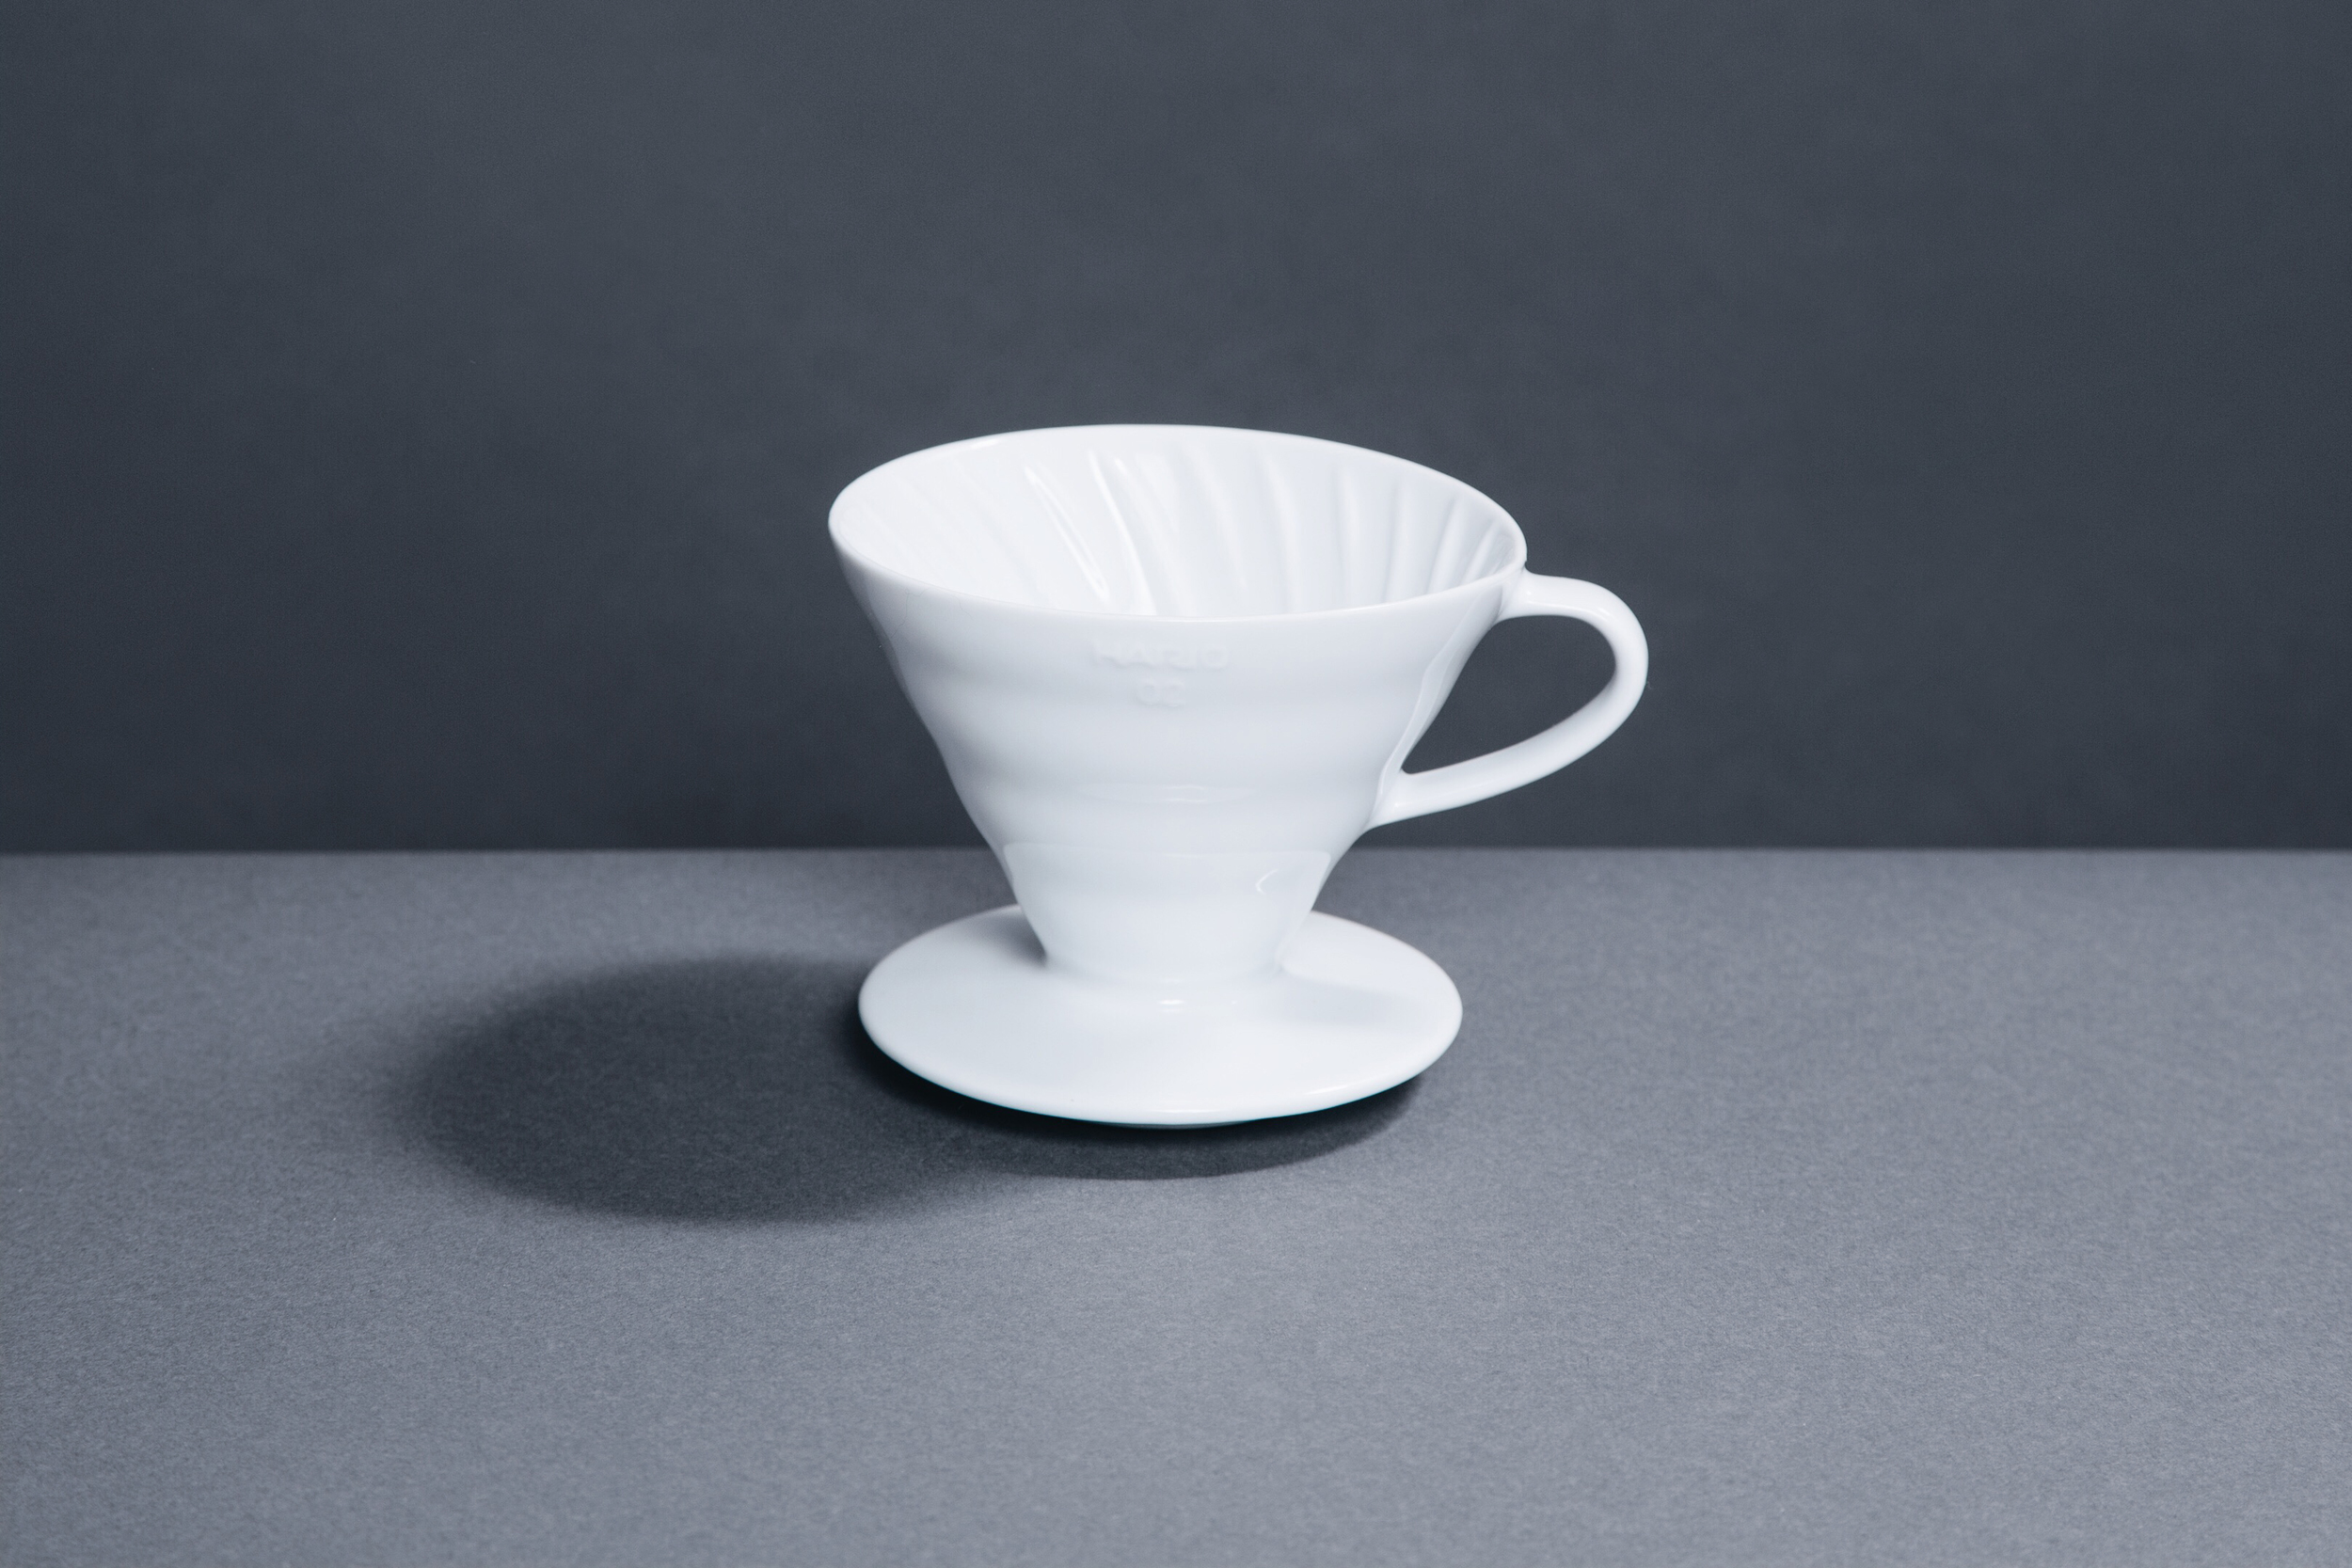 Hairo V60 Coffee Dripper